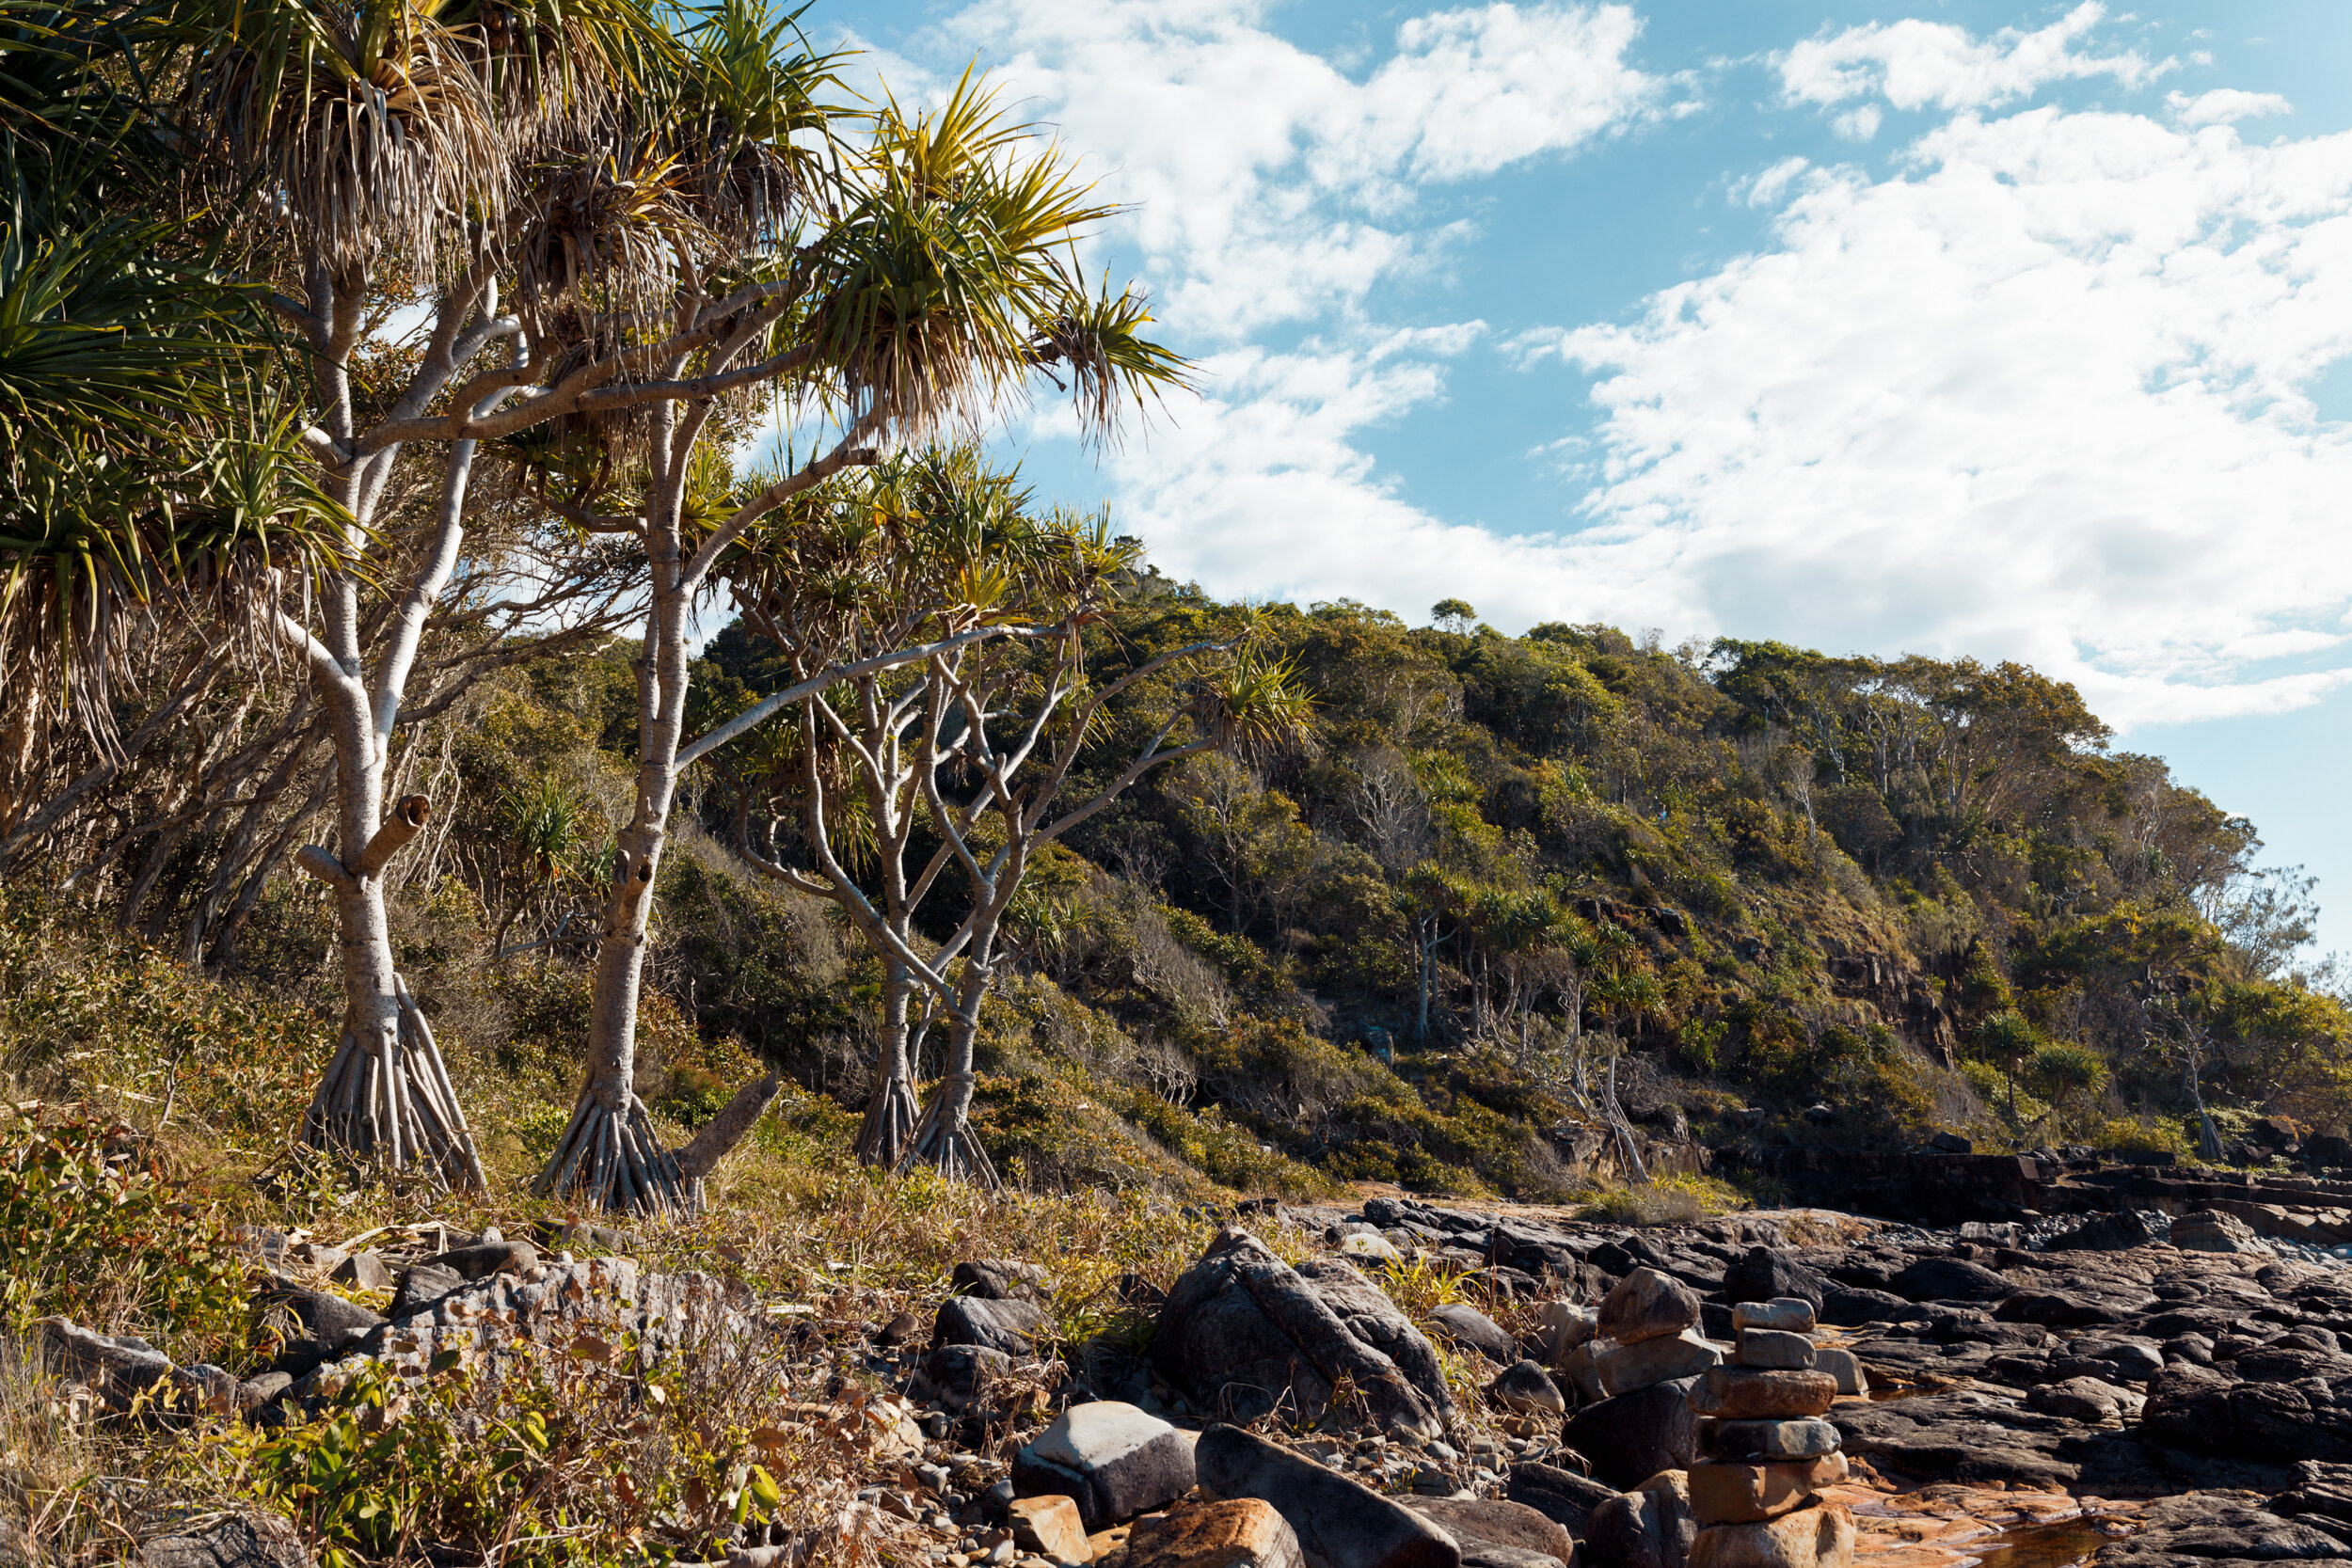 Stunning coastline along the water in Noosa National Park.